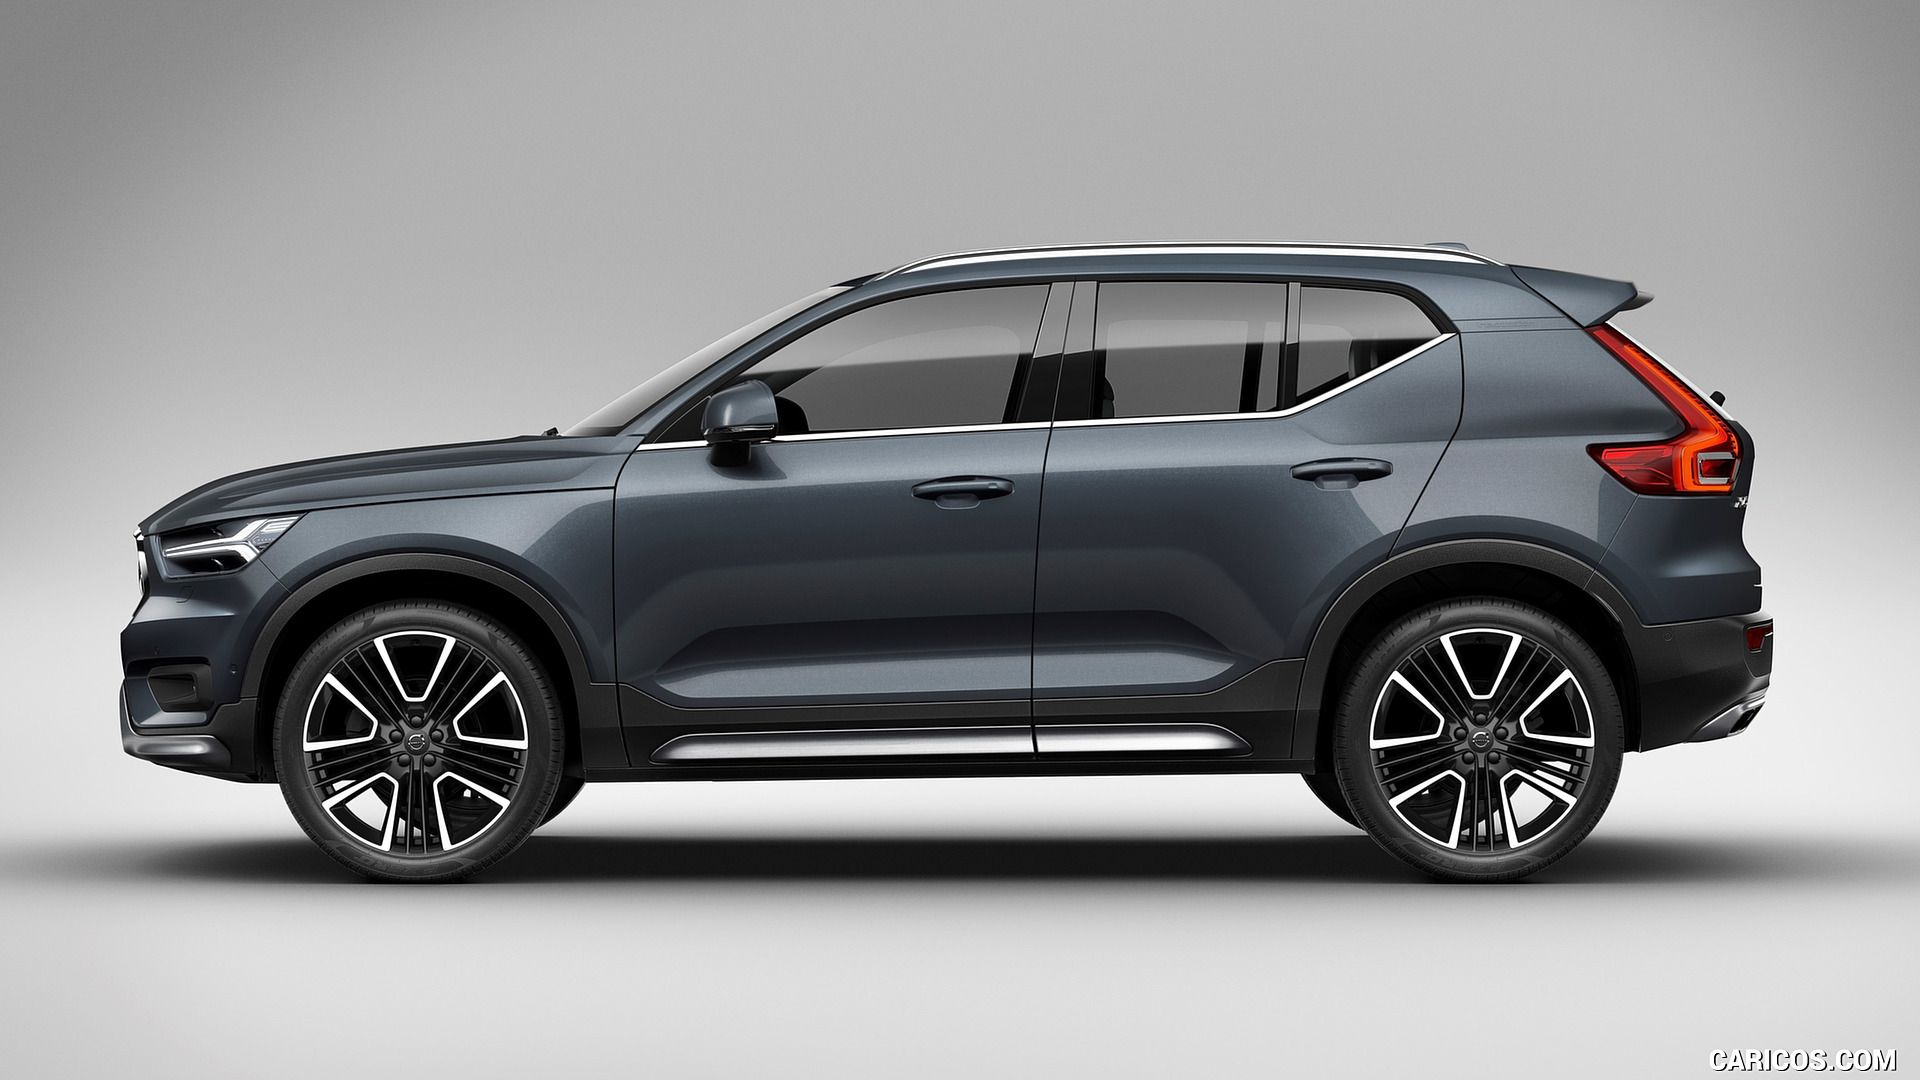 2019 Volvo Xc40 Inscription Wallpaper With Images Volvo Volvo